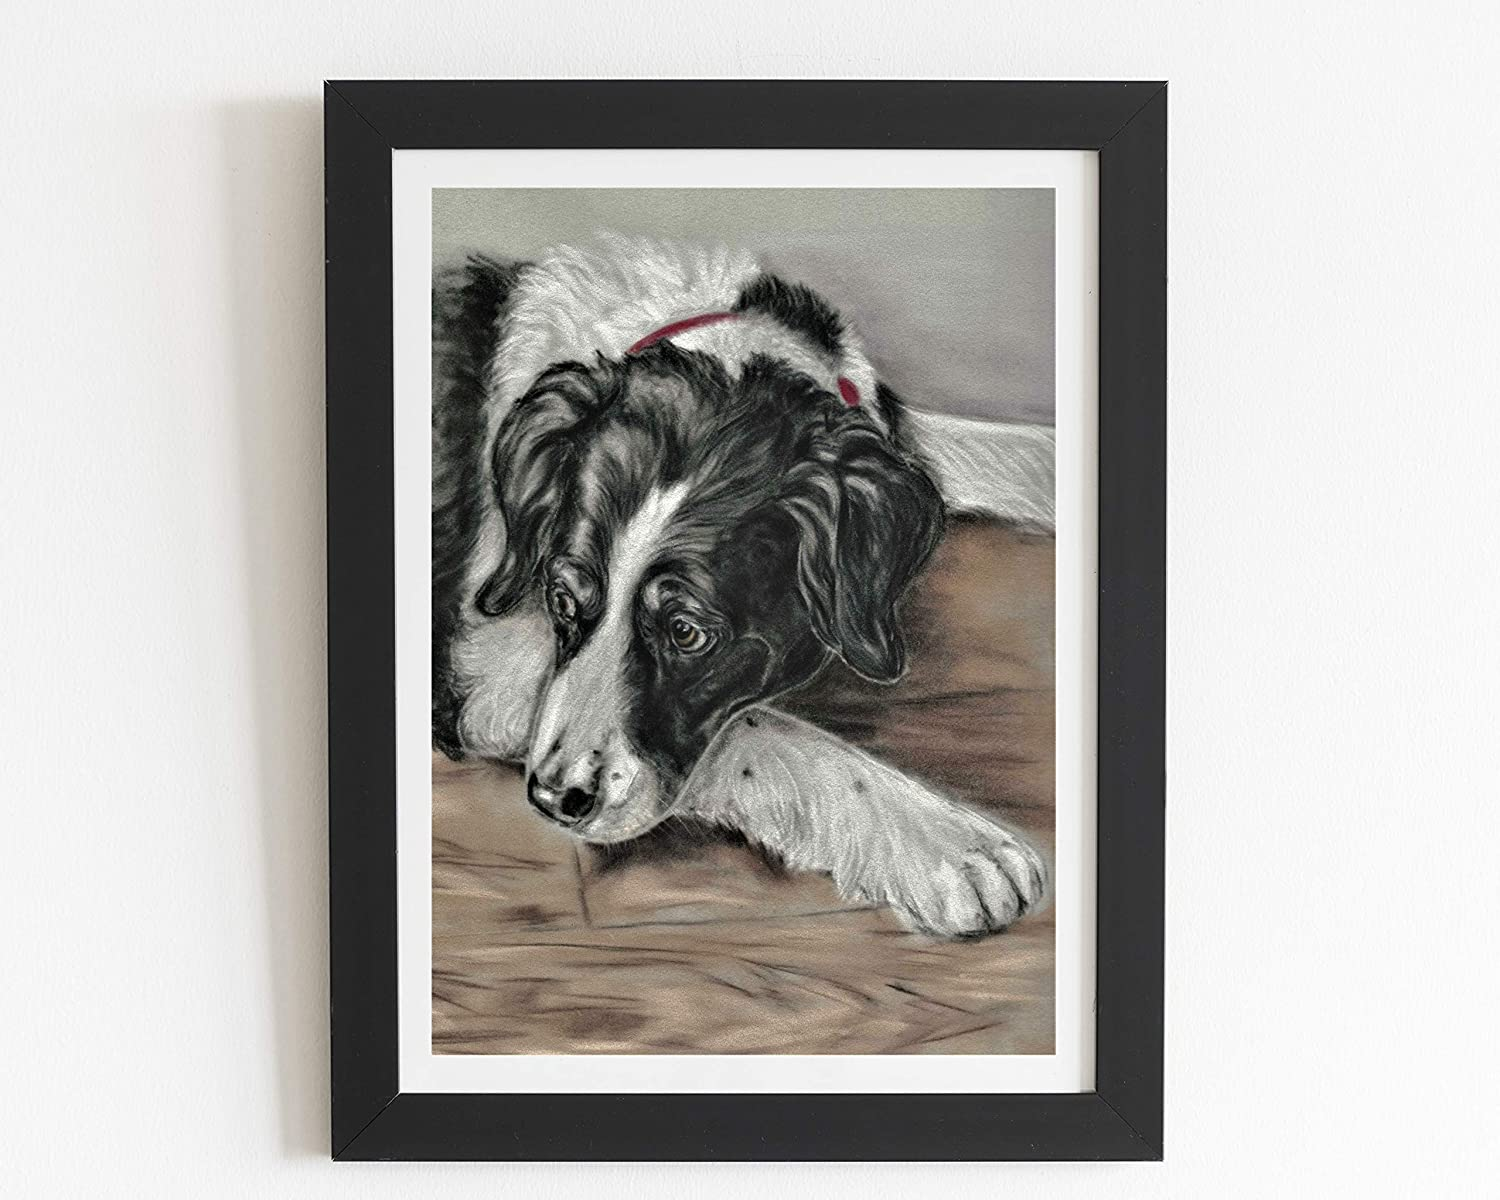 Framed Border Collie sheep dog gifts original art print boxed with signed Certificate